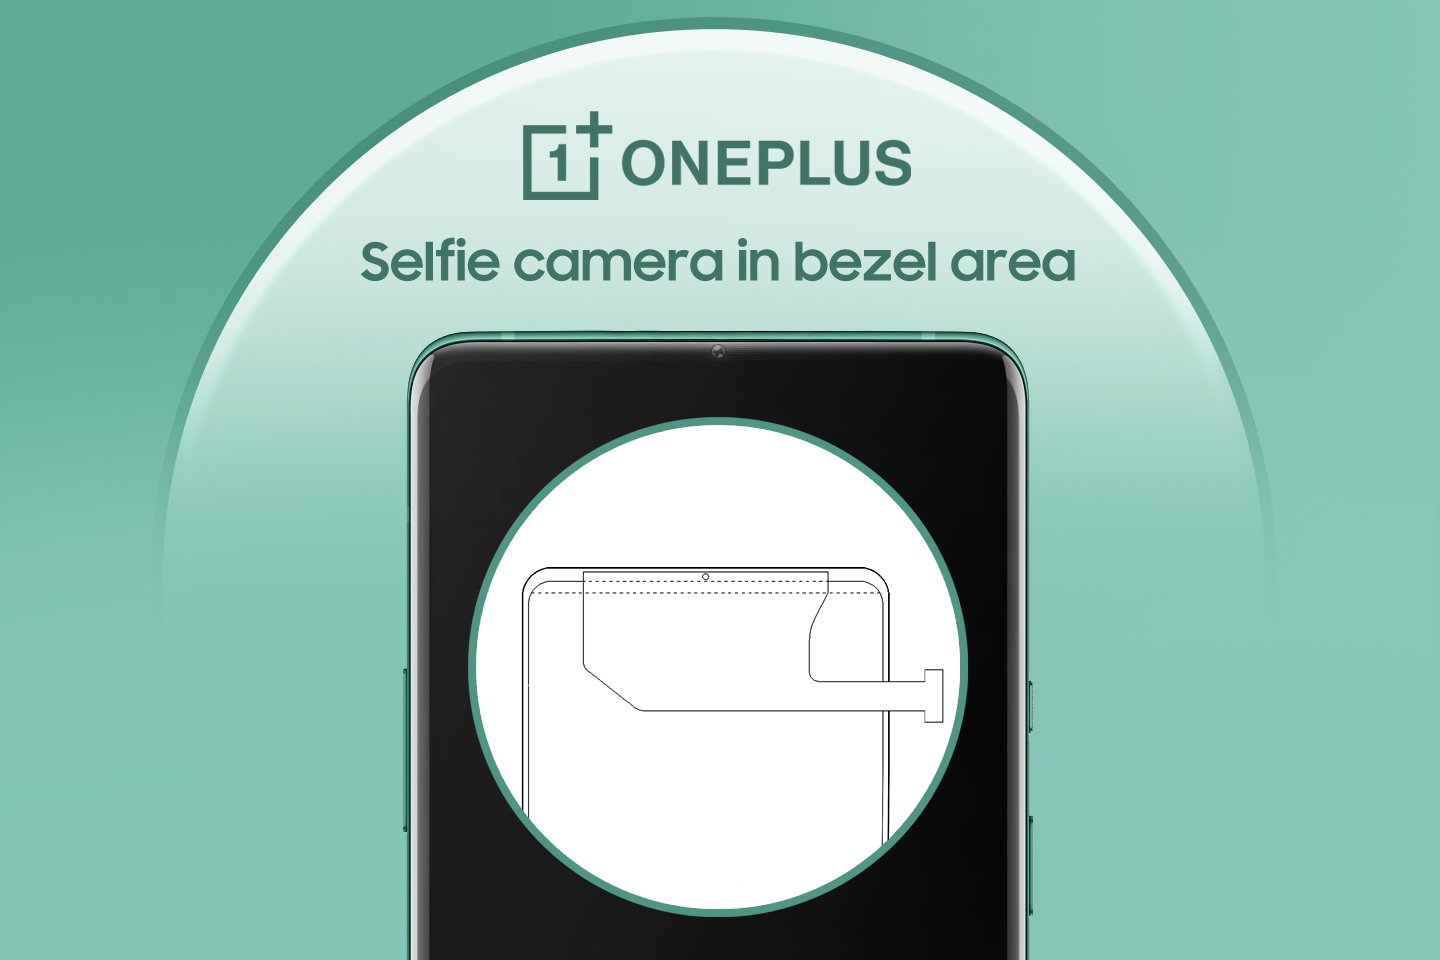 OnePlus patents a smartphone design with WIPO describing a bezel selfie camera